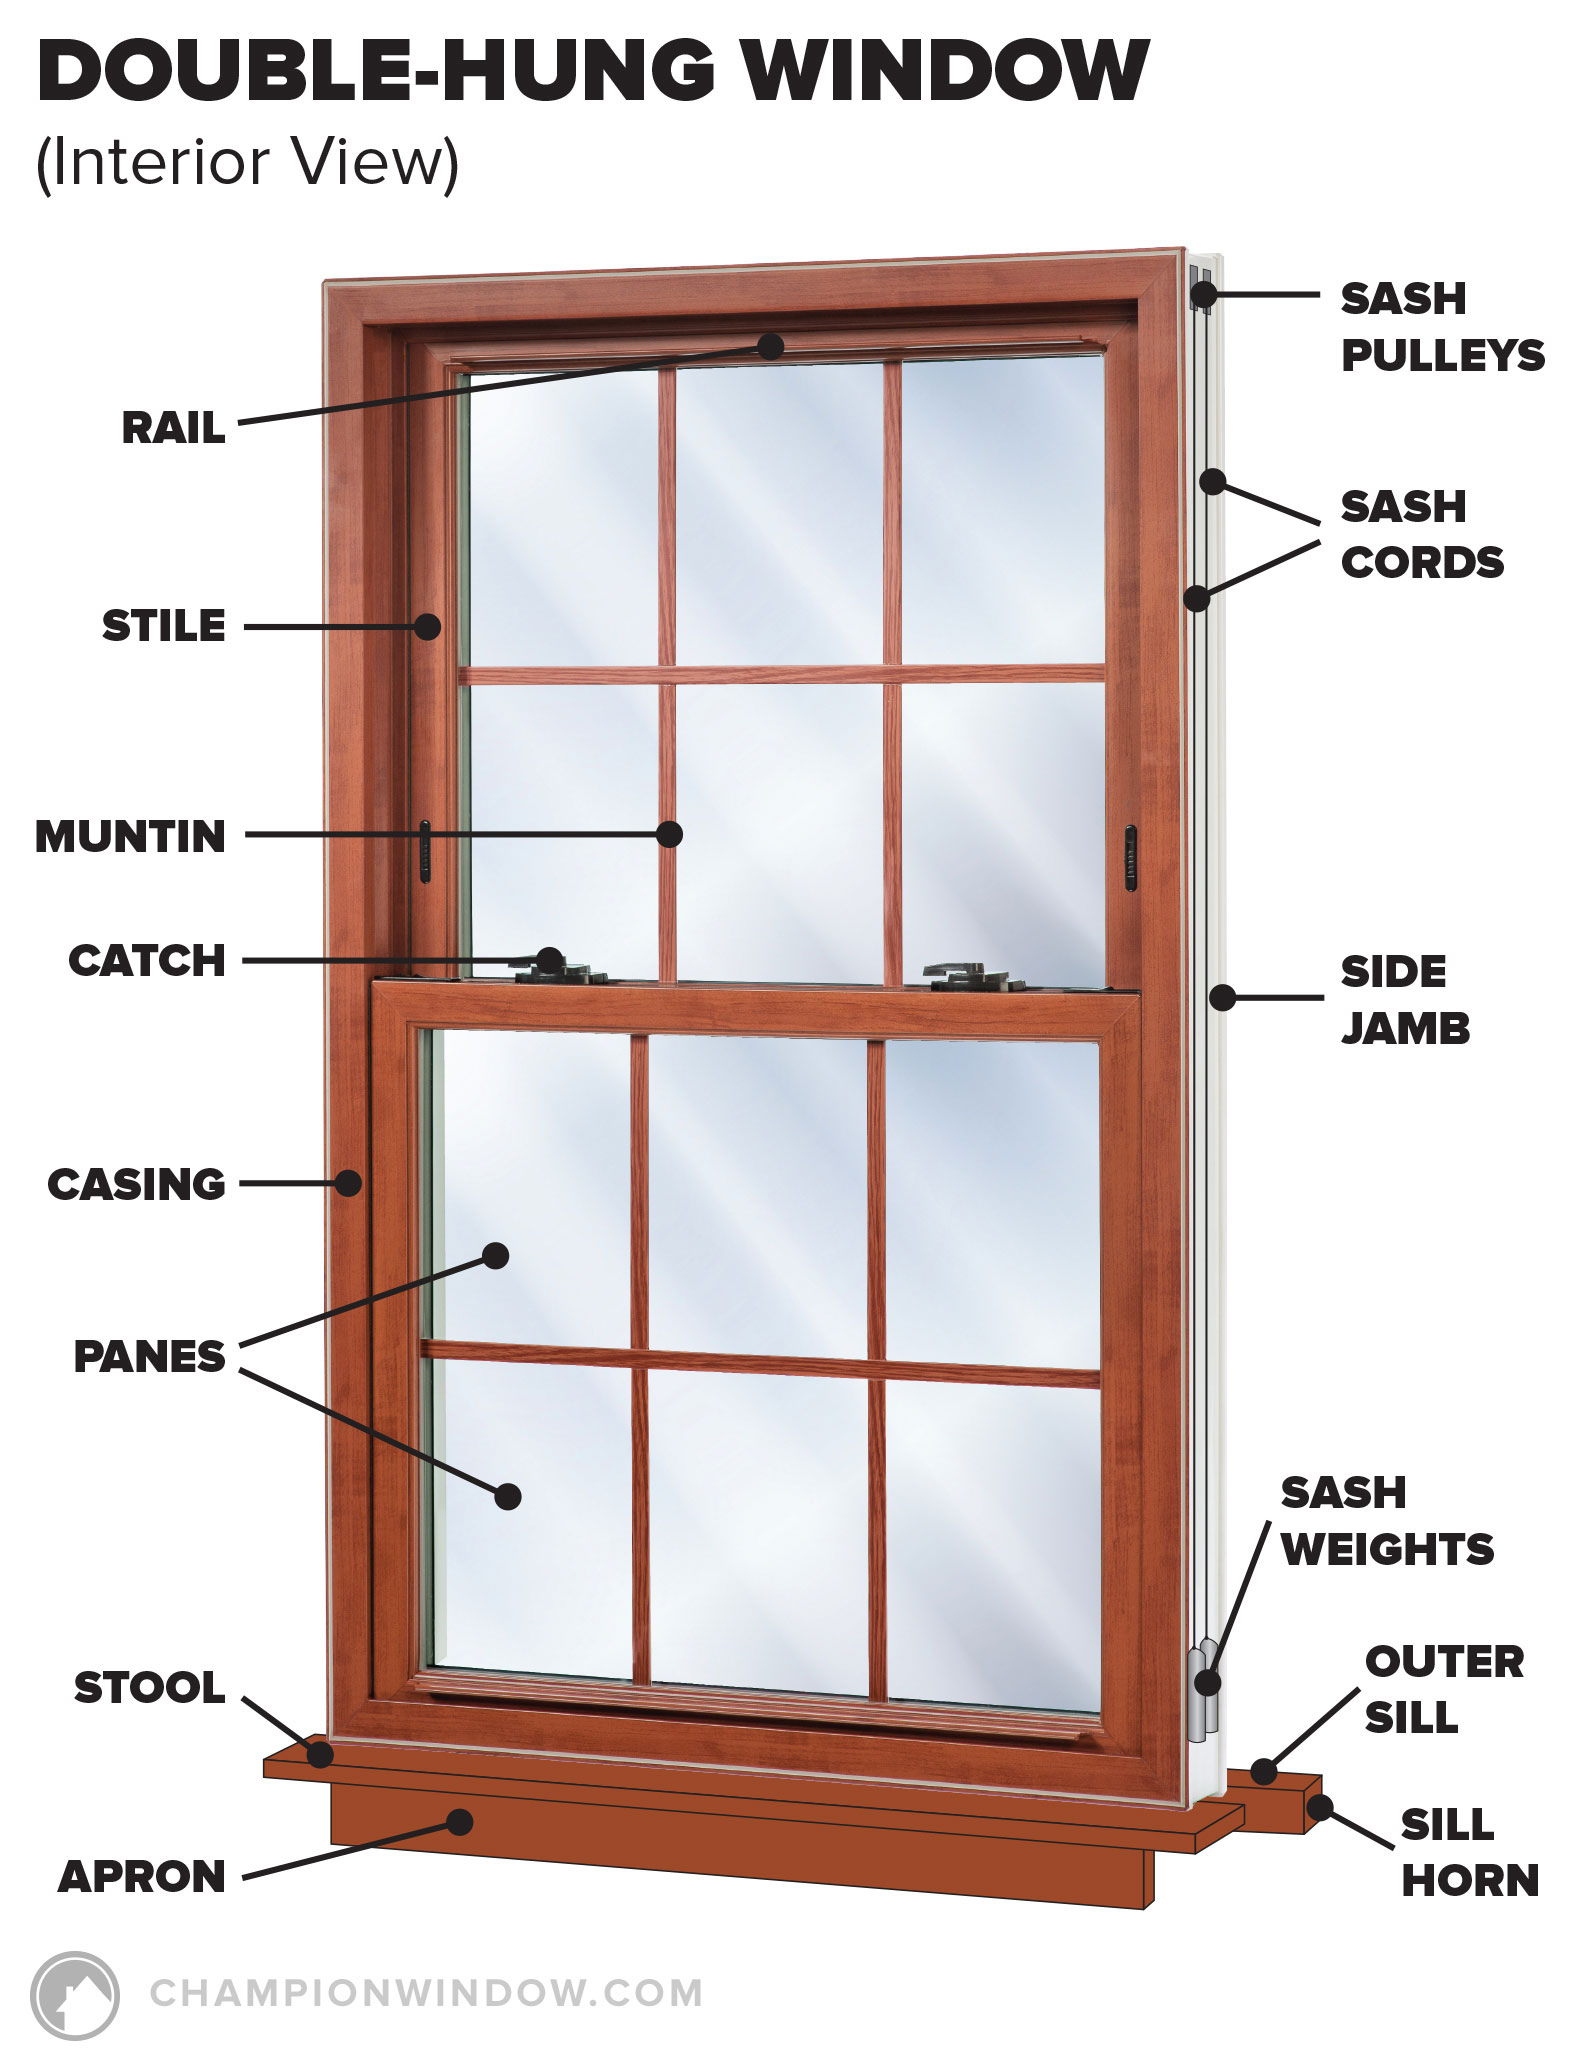 Double-hung window diagram